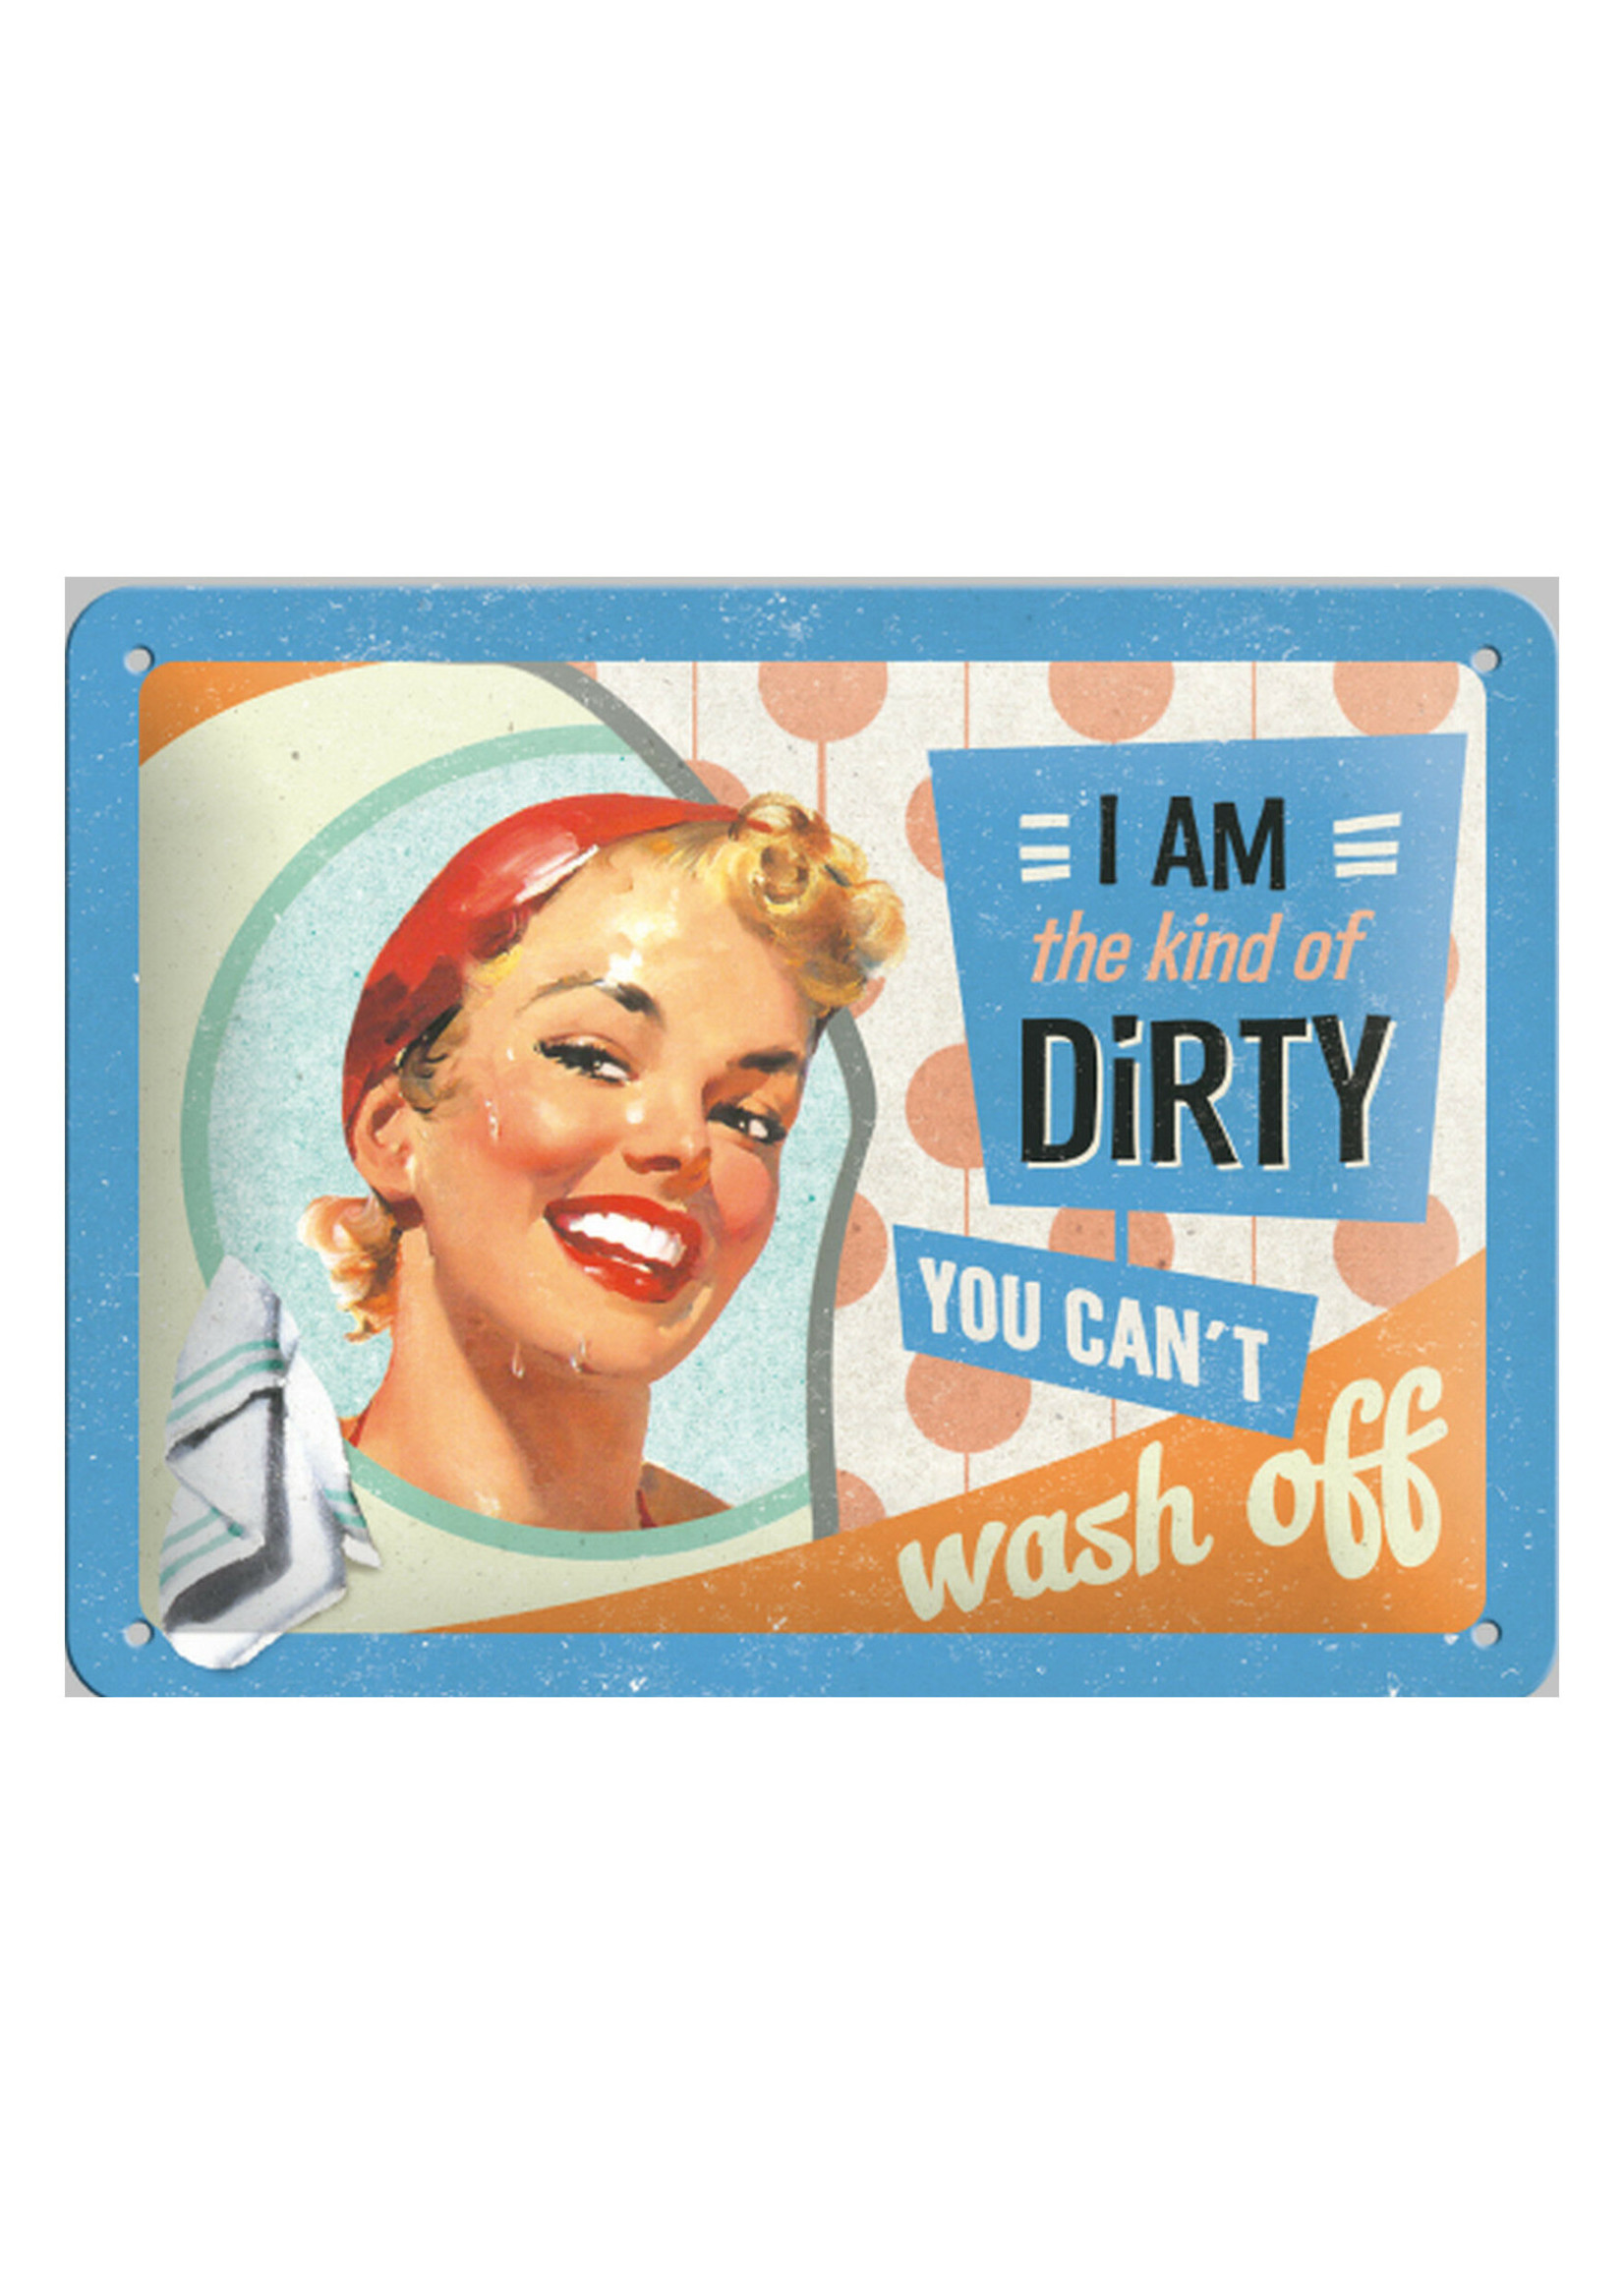 Nostalgic Art Metal wall sign 15 x 20 cm I Am the kind of dirty you can't wash off